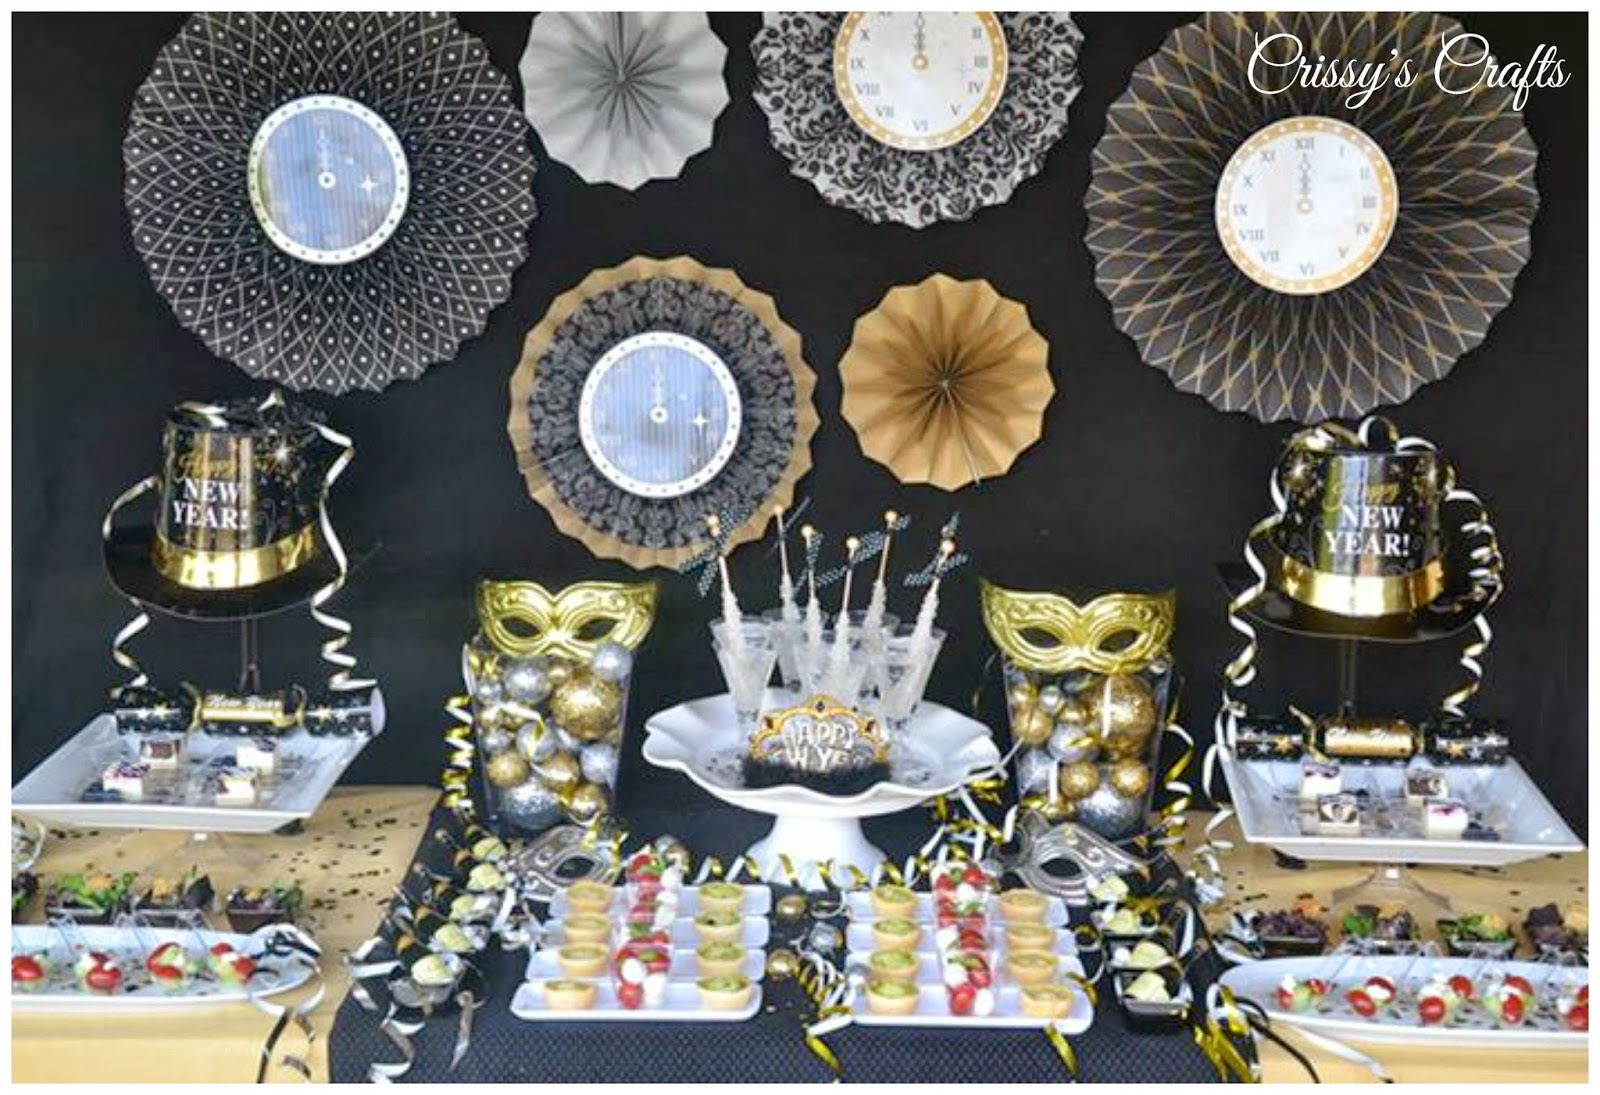 crissy 39 s crafts new years eve party ideas. Black Bedroom Furniture Sets. Home Design Ideas